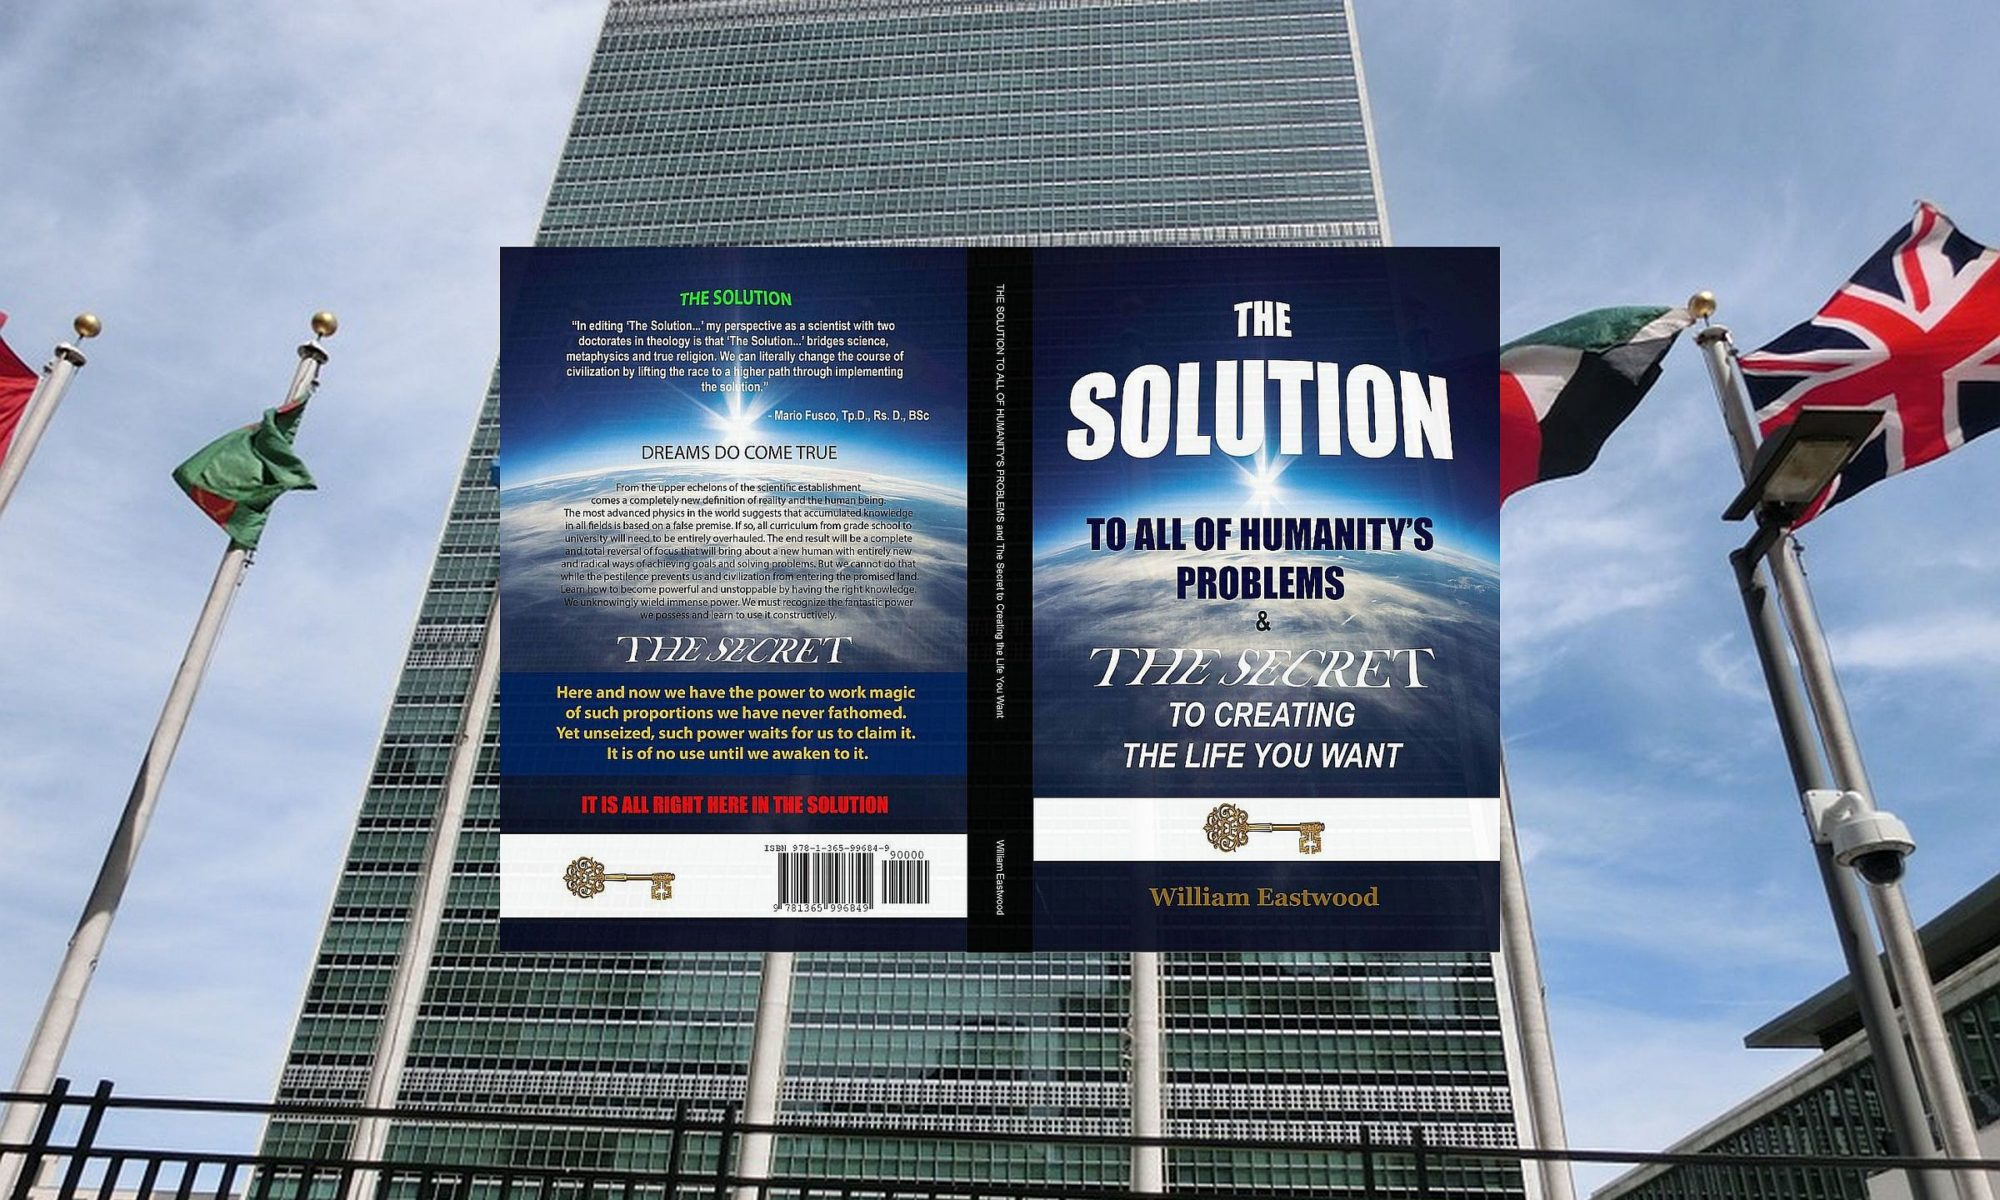 The-solution-to-all-of-humanity's-problems-&-the-secret-to-creating-the-life-you-want-book-by-William-Eastwood-2400